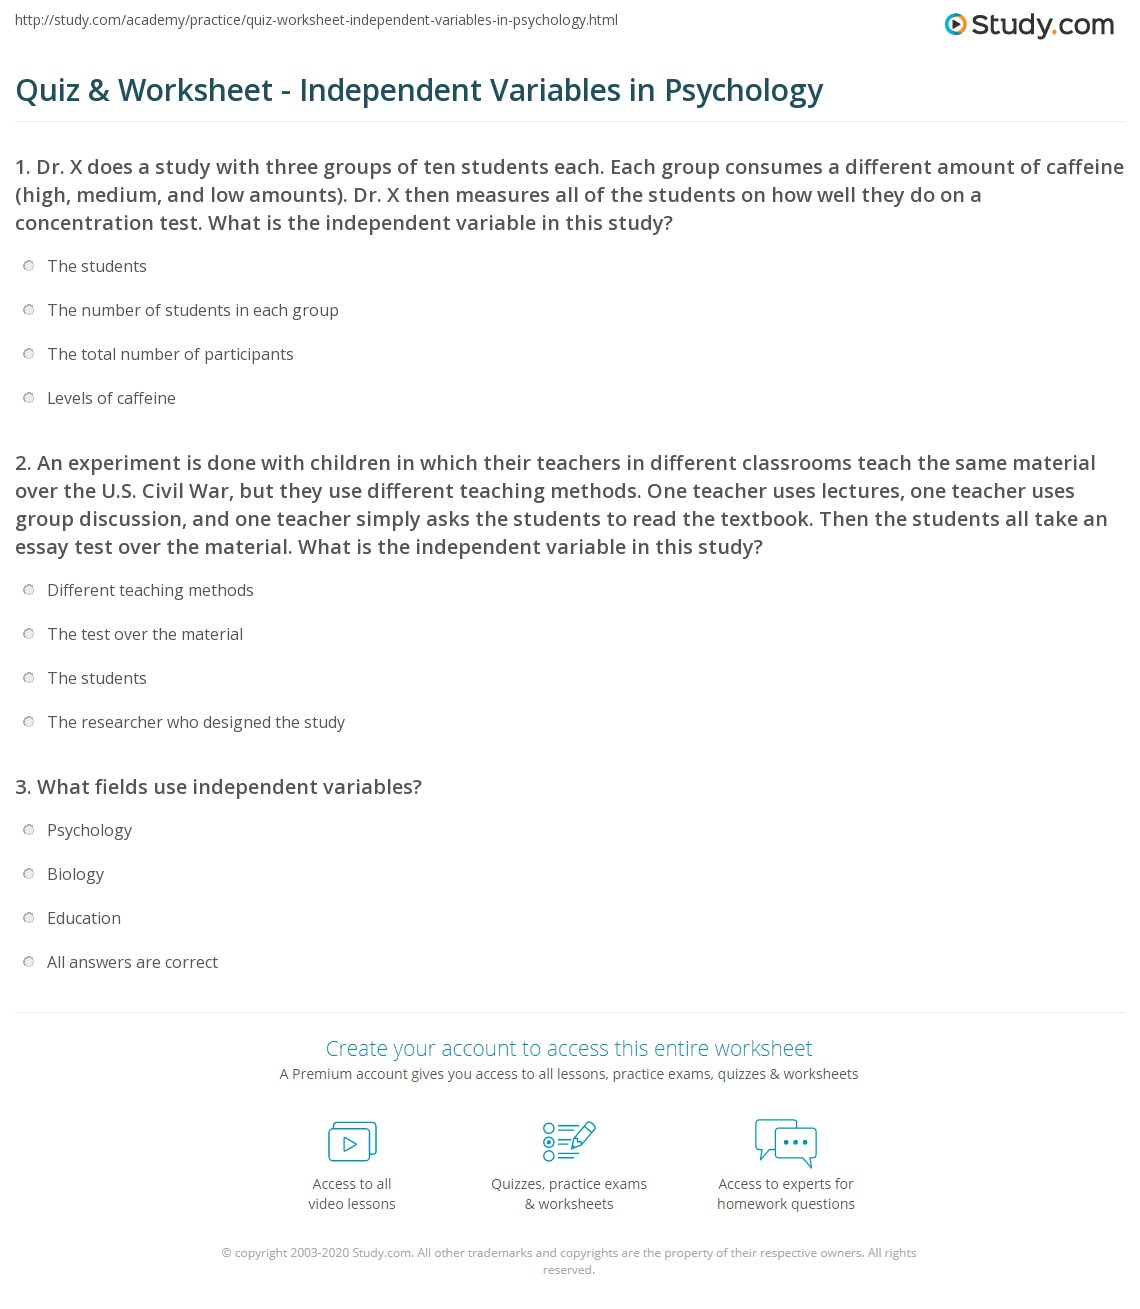 Uncategorized Identifying Independent And Dependent Variables Worksheet quiz worksheet independent variables in psychology study com 1 an experiment is done with children which their teachers different classrooms teach the same material over u s civil w